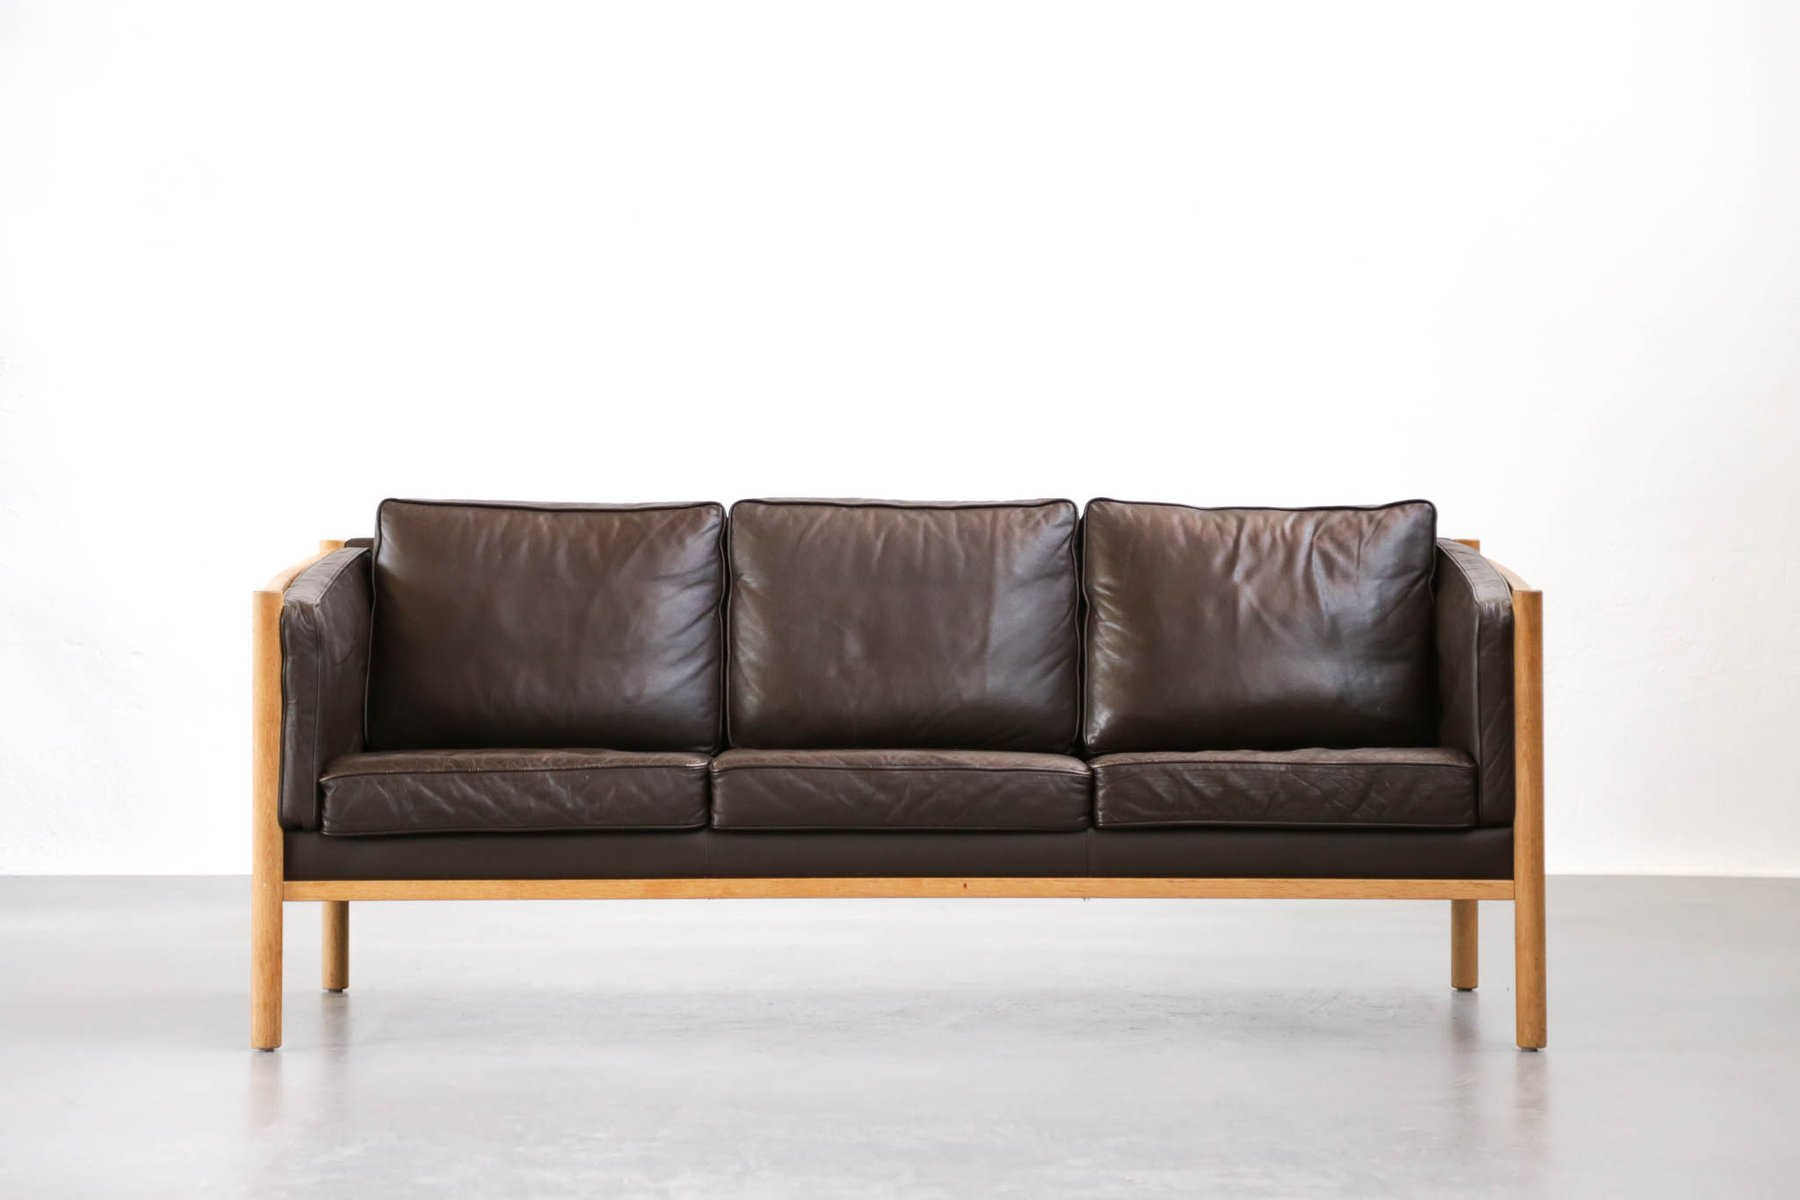 Mid century scandinavian brown leather sofa 1970s for for Scandinavian sofa